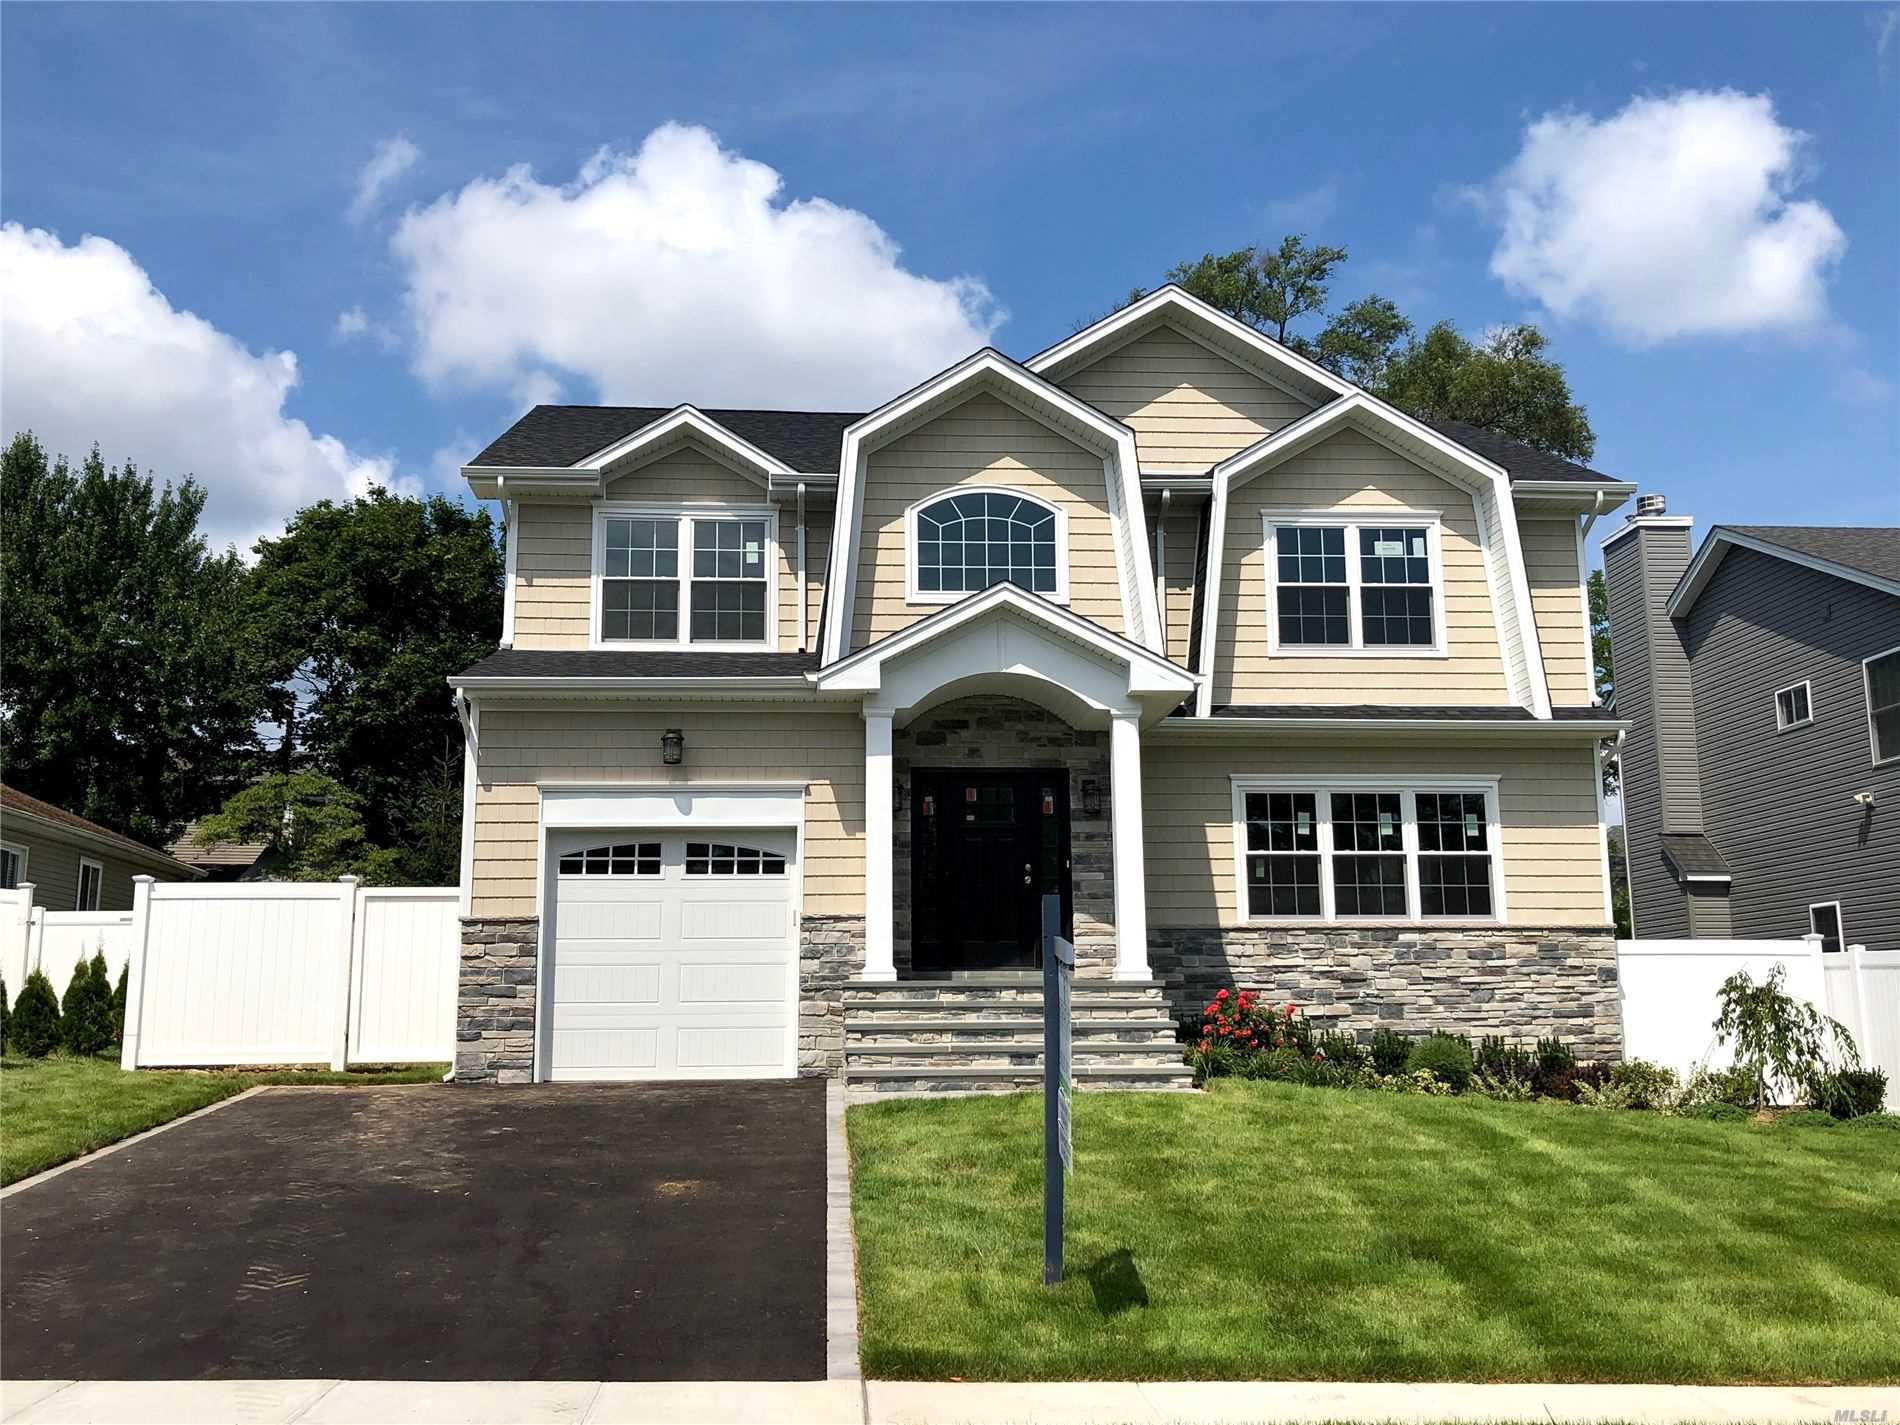 11 Willets Dr - Syosset, New York